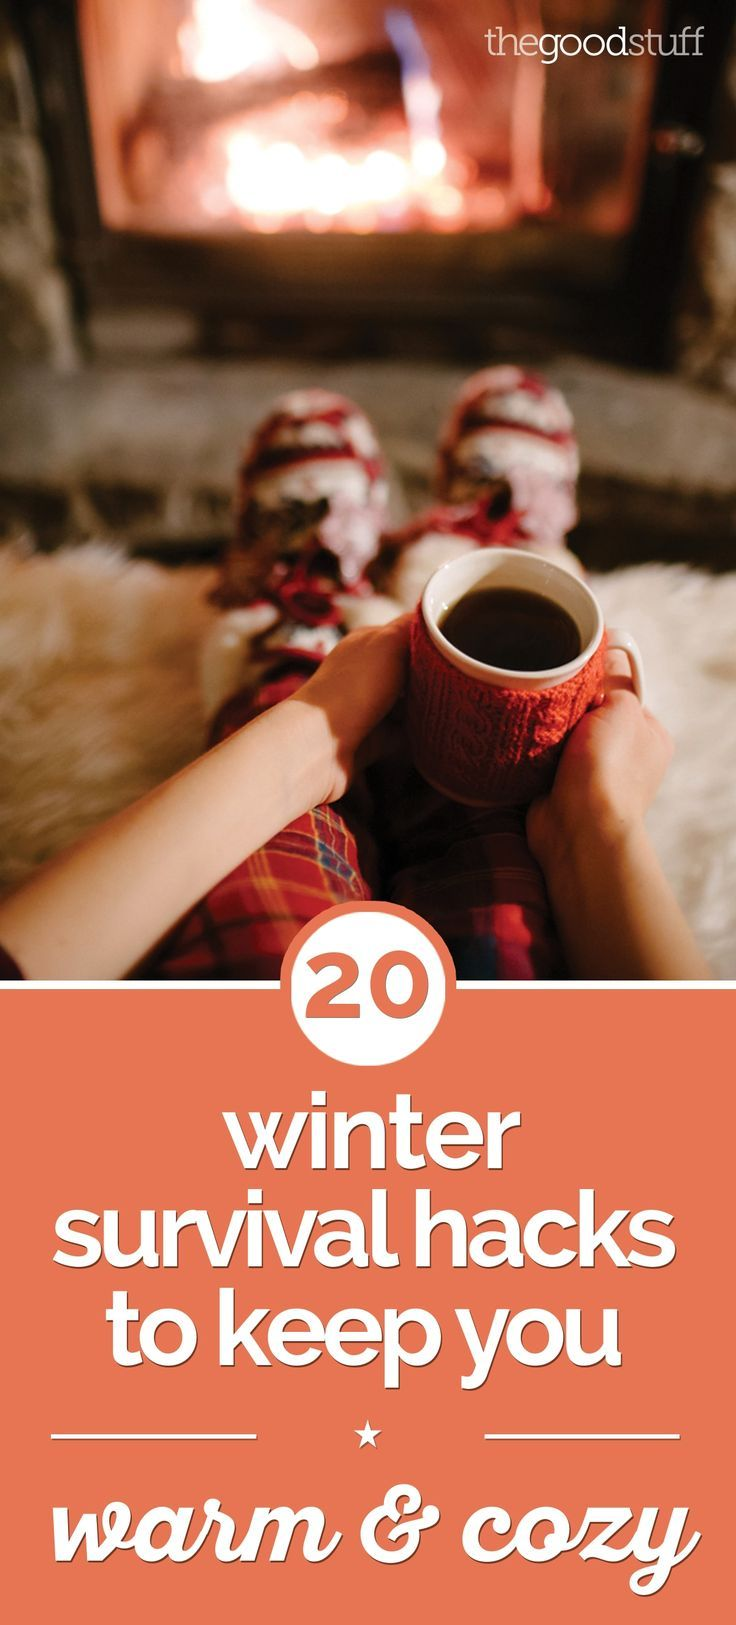 20 Winter Survival Hacks to Keep You Warm & Cozy - thegoodstuff #wintersurvivalsupplies